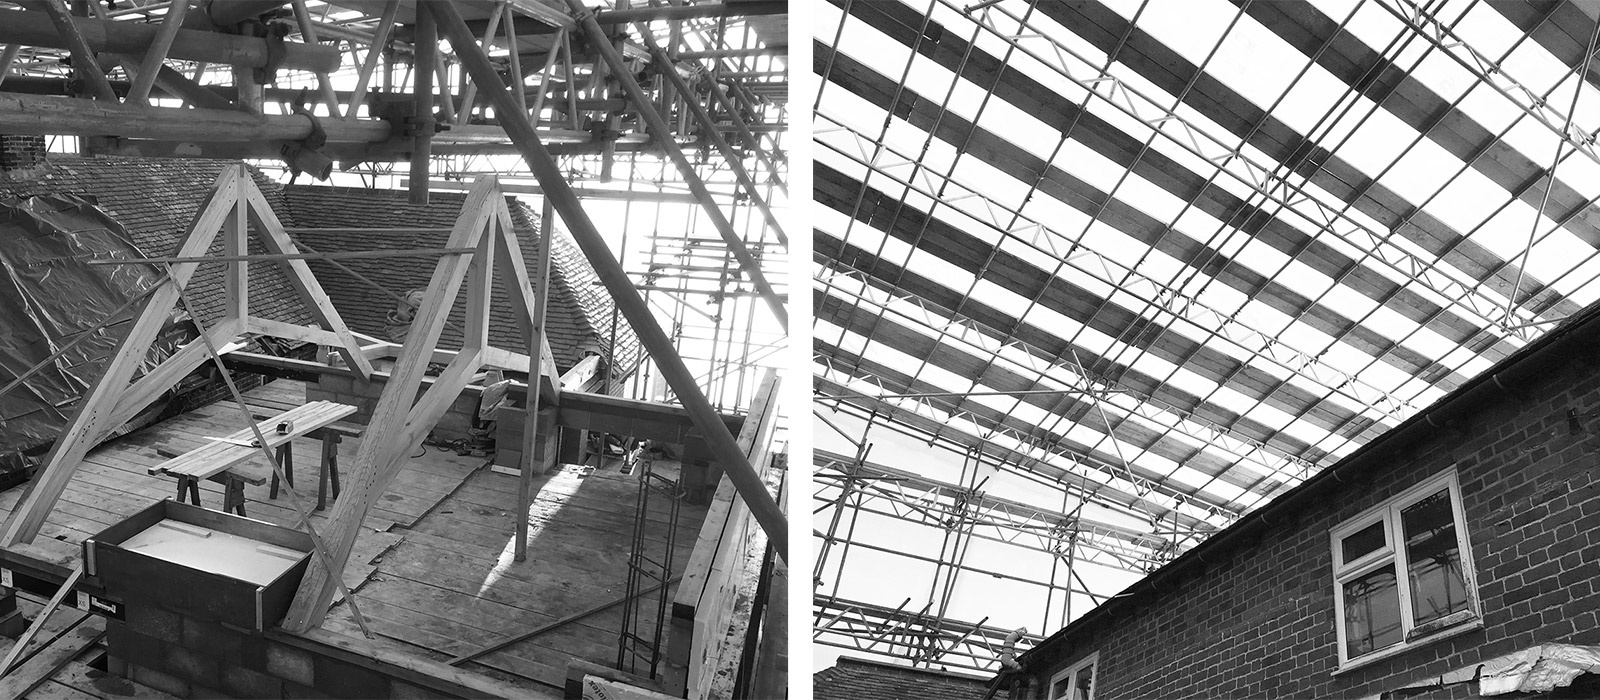 gyd architecture | oak trusses | temporary roof covering